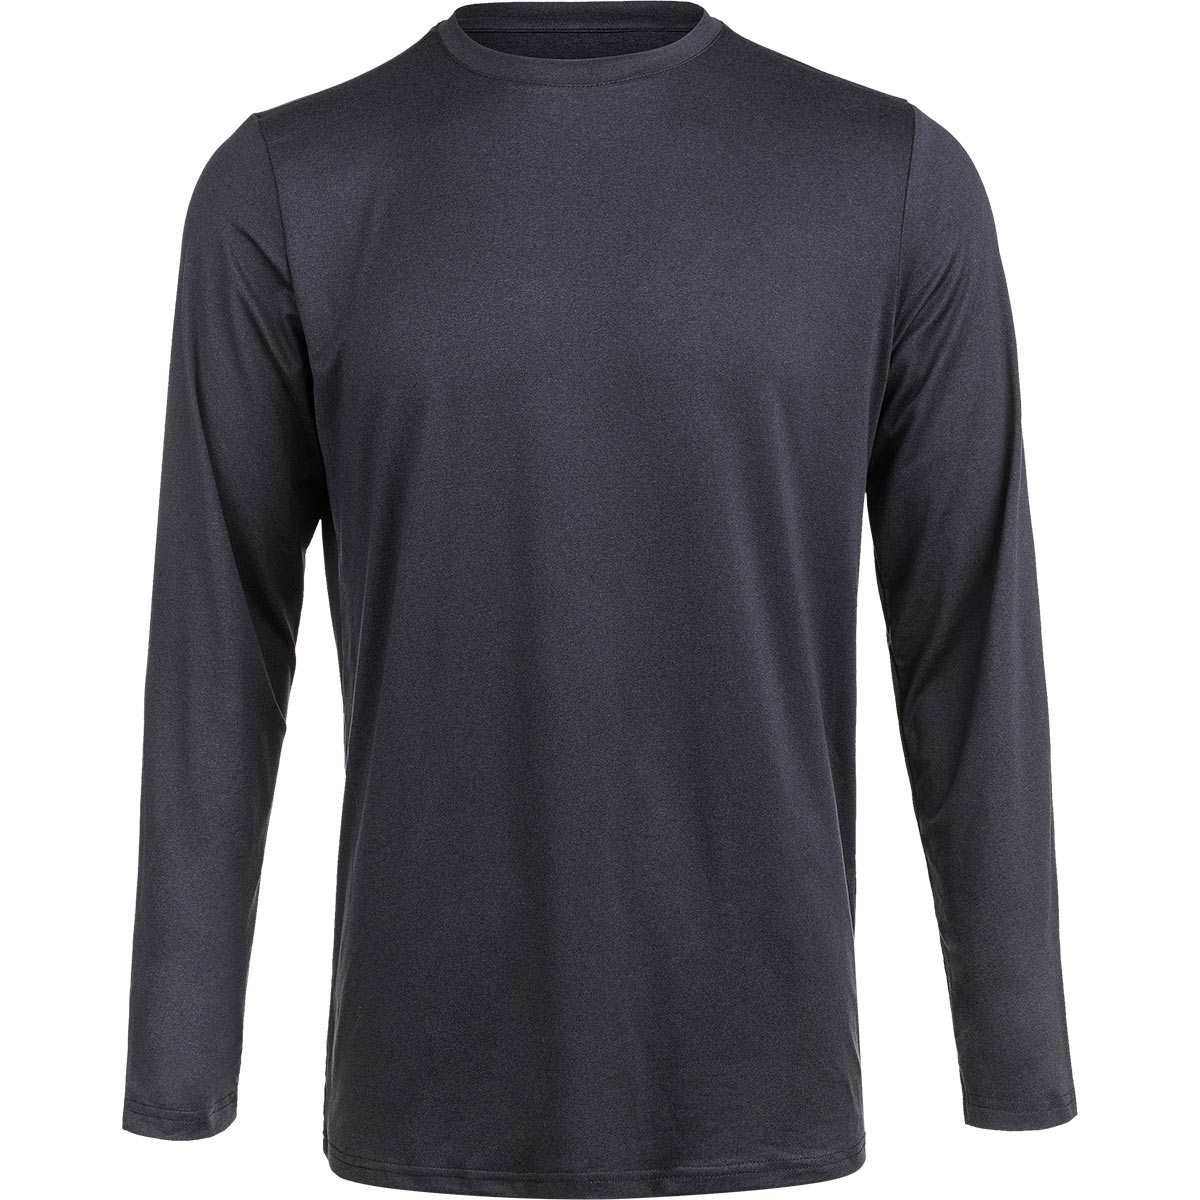 Elite Lab Sustainable X1 Elite LS Tee Black herre